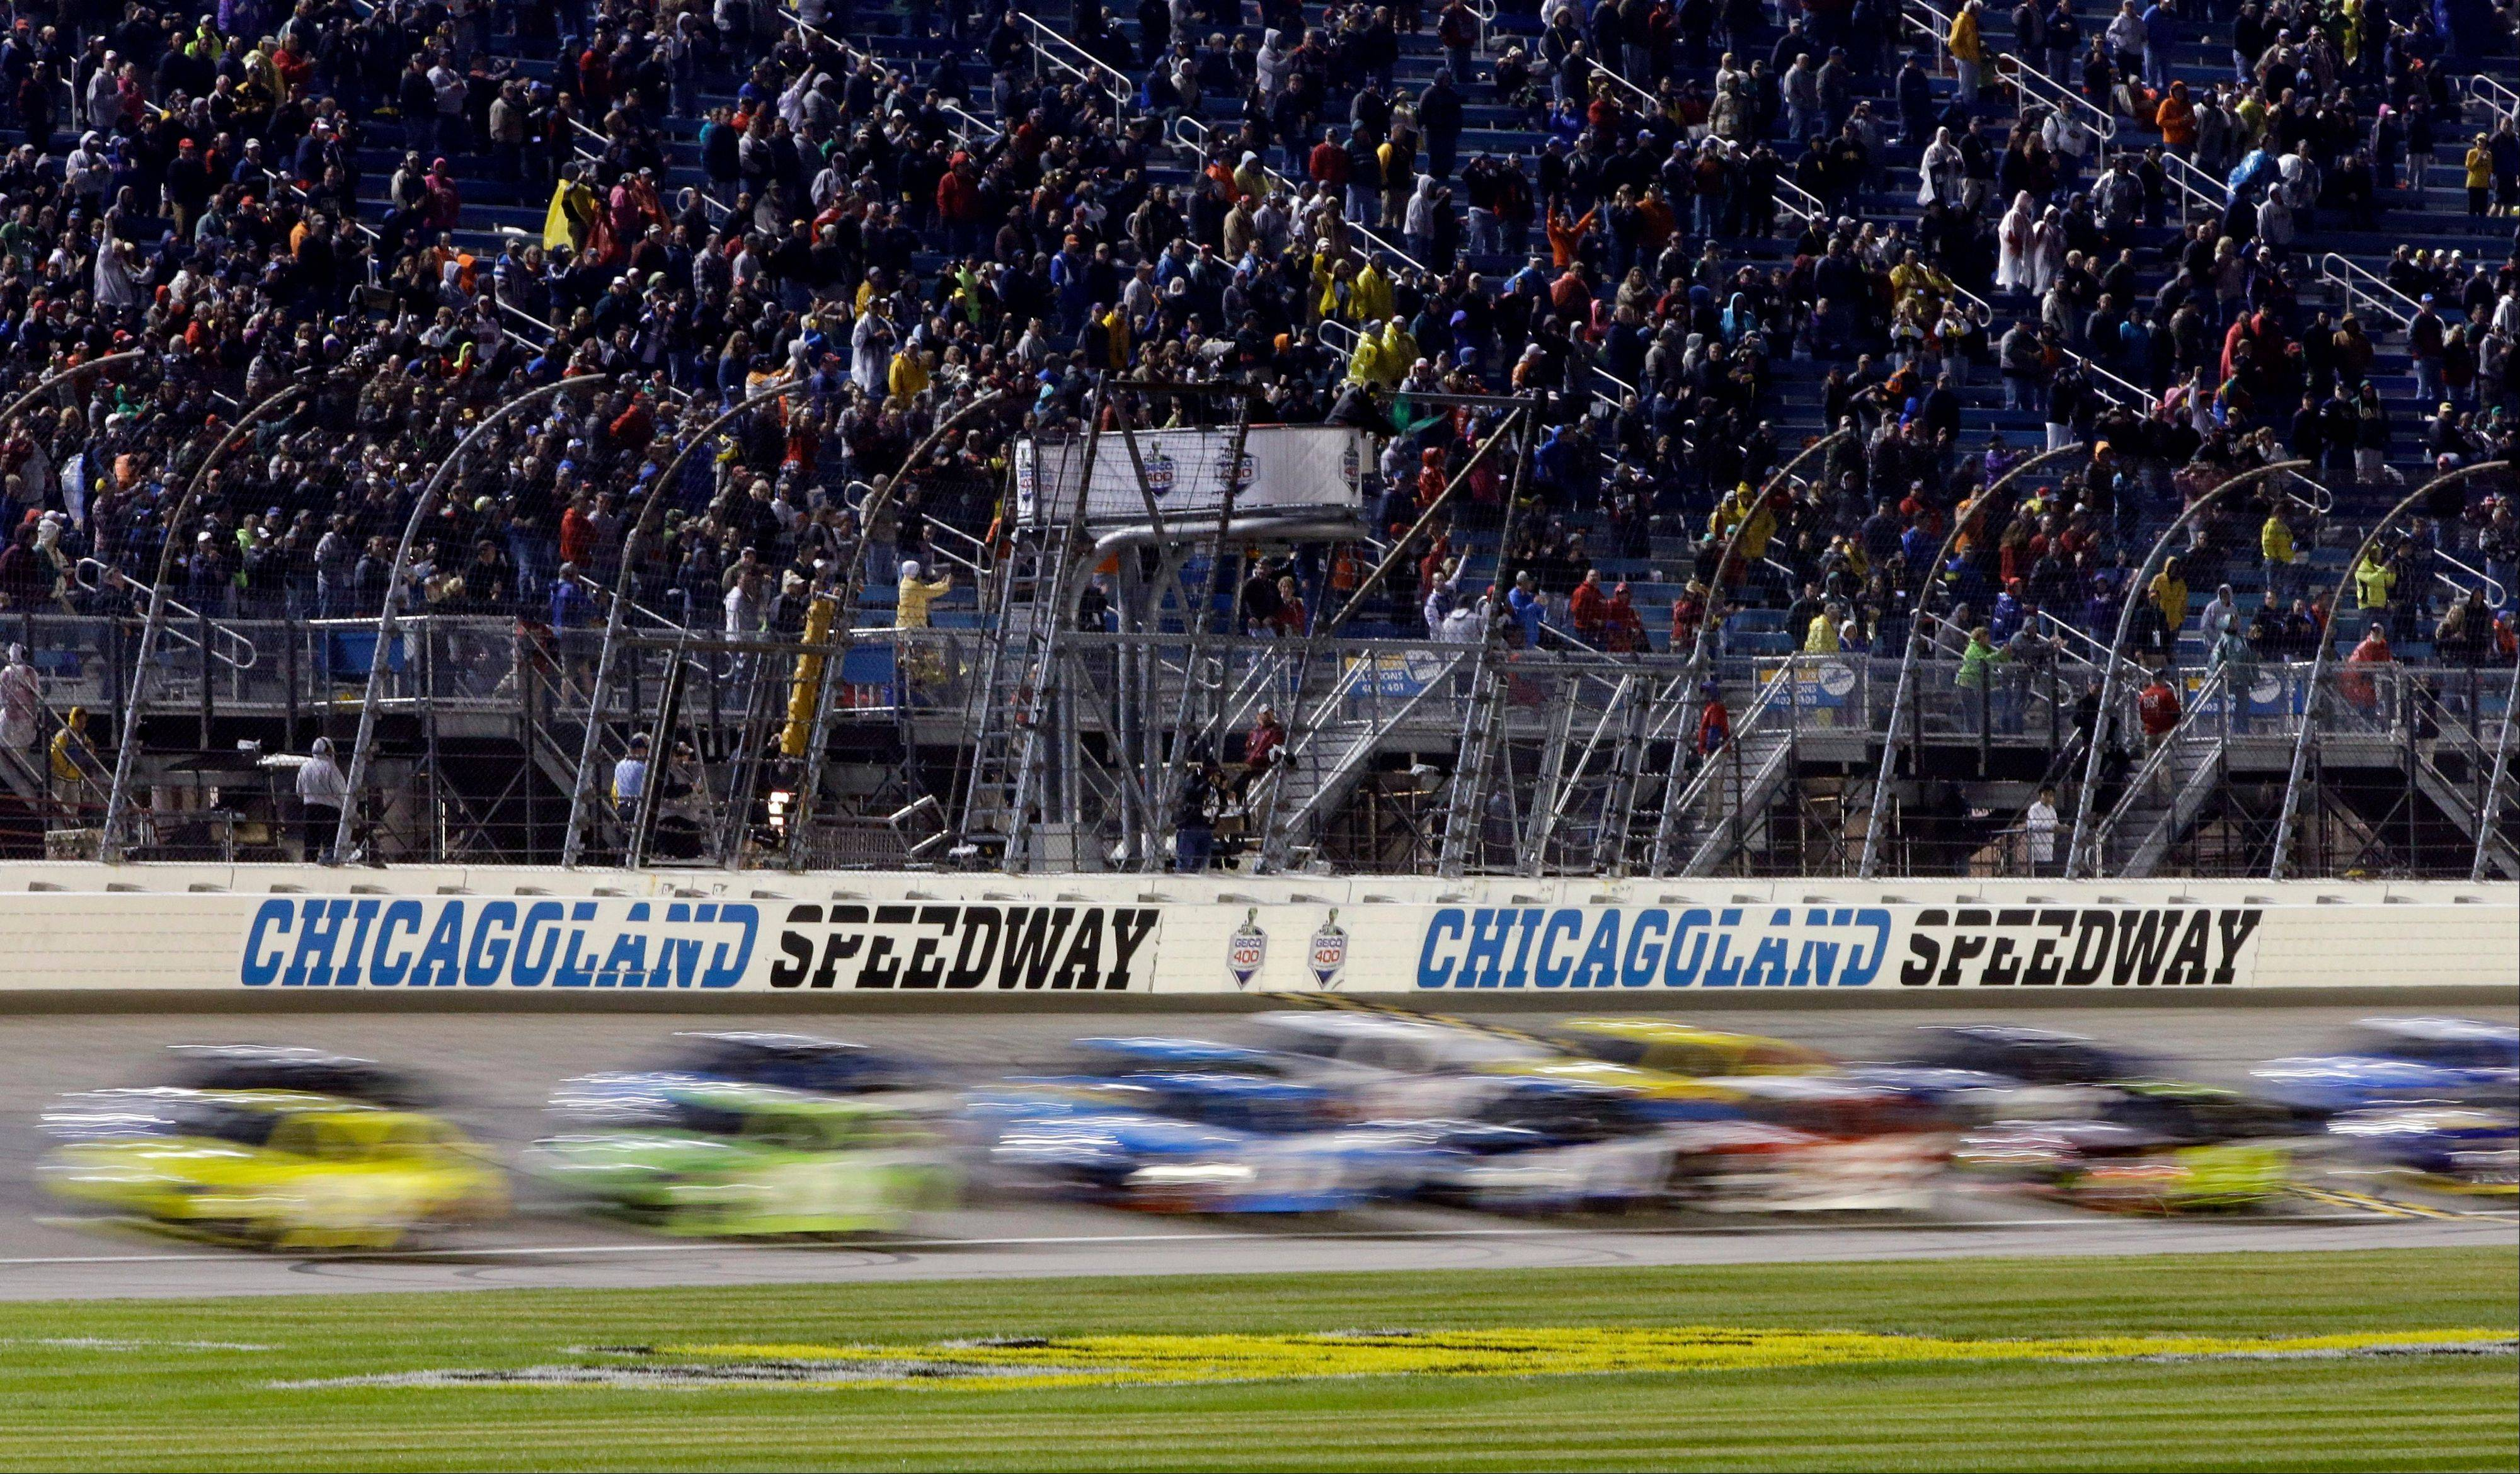 Drivers restart after being rain delayed during the NASCAR Sprint Cup series auto race at Chicagoland Speedway in Joliet, Ill., Sunday, Sept. 15, 2013.